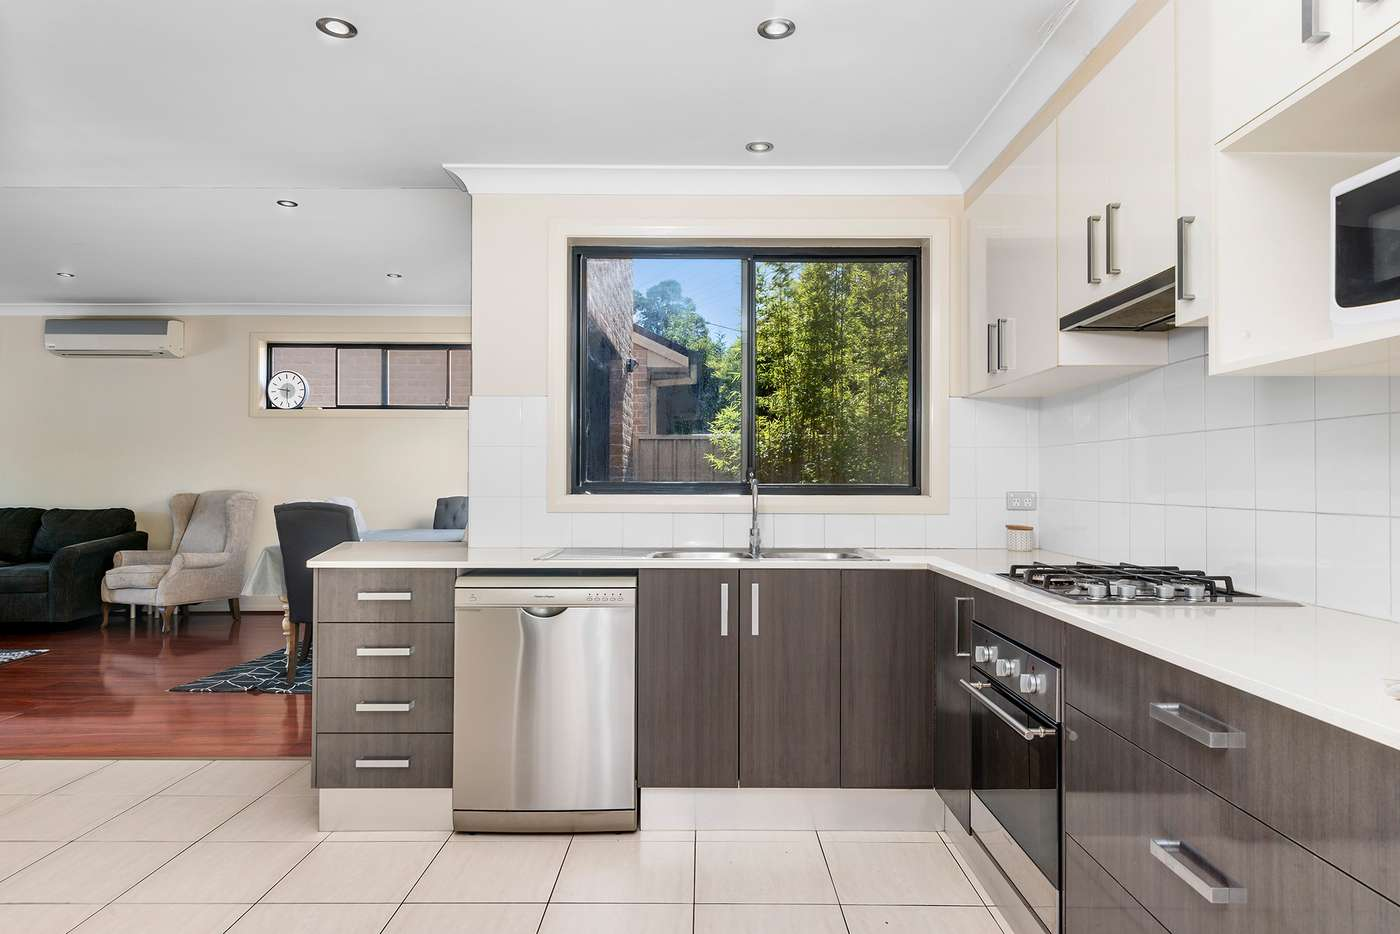 Main view of Homely townhouse listing, 6/25 Highway Avenue, West Wollongong NSW 2500